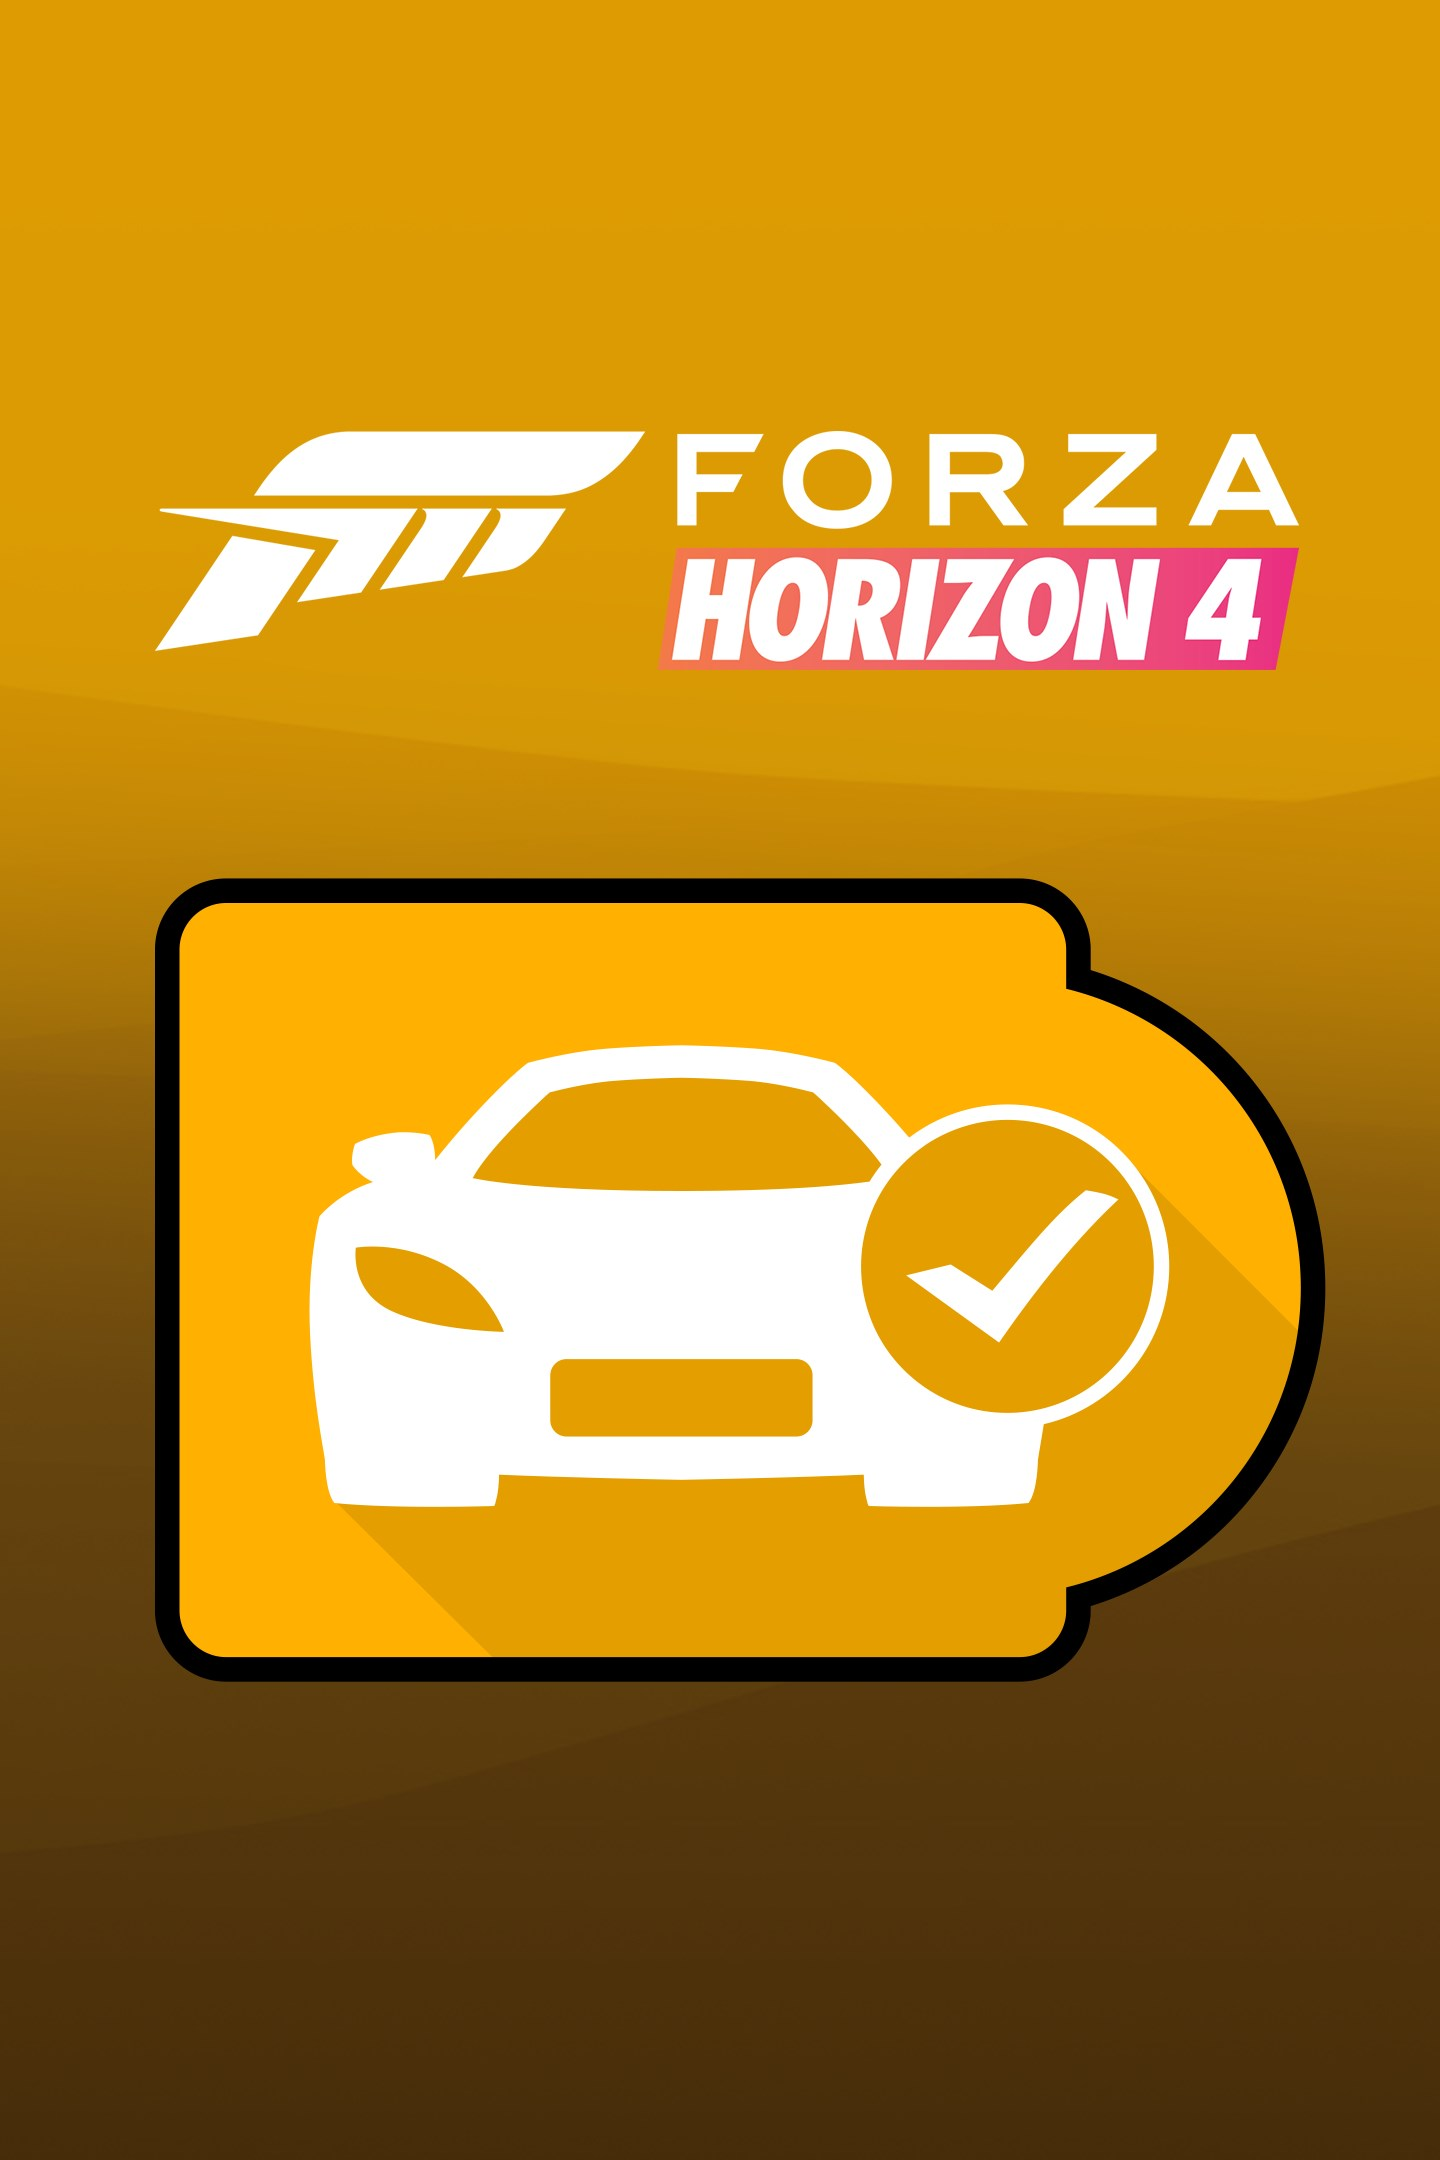 Cars Price Buy Forza Horizon 4 Car Pass Microsoft Store En Gb